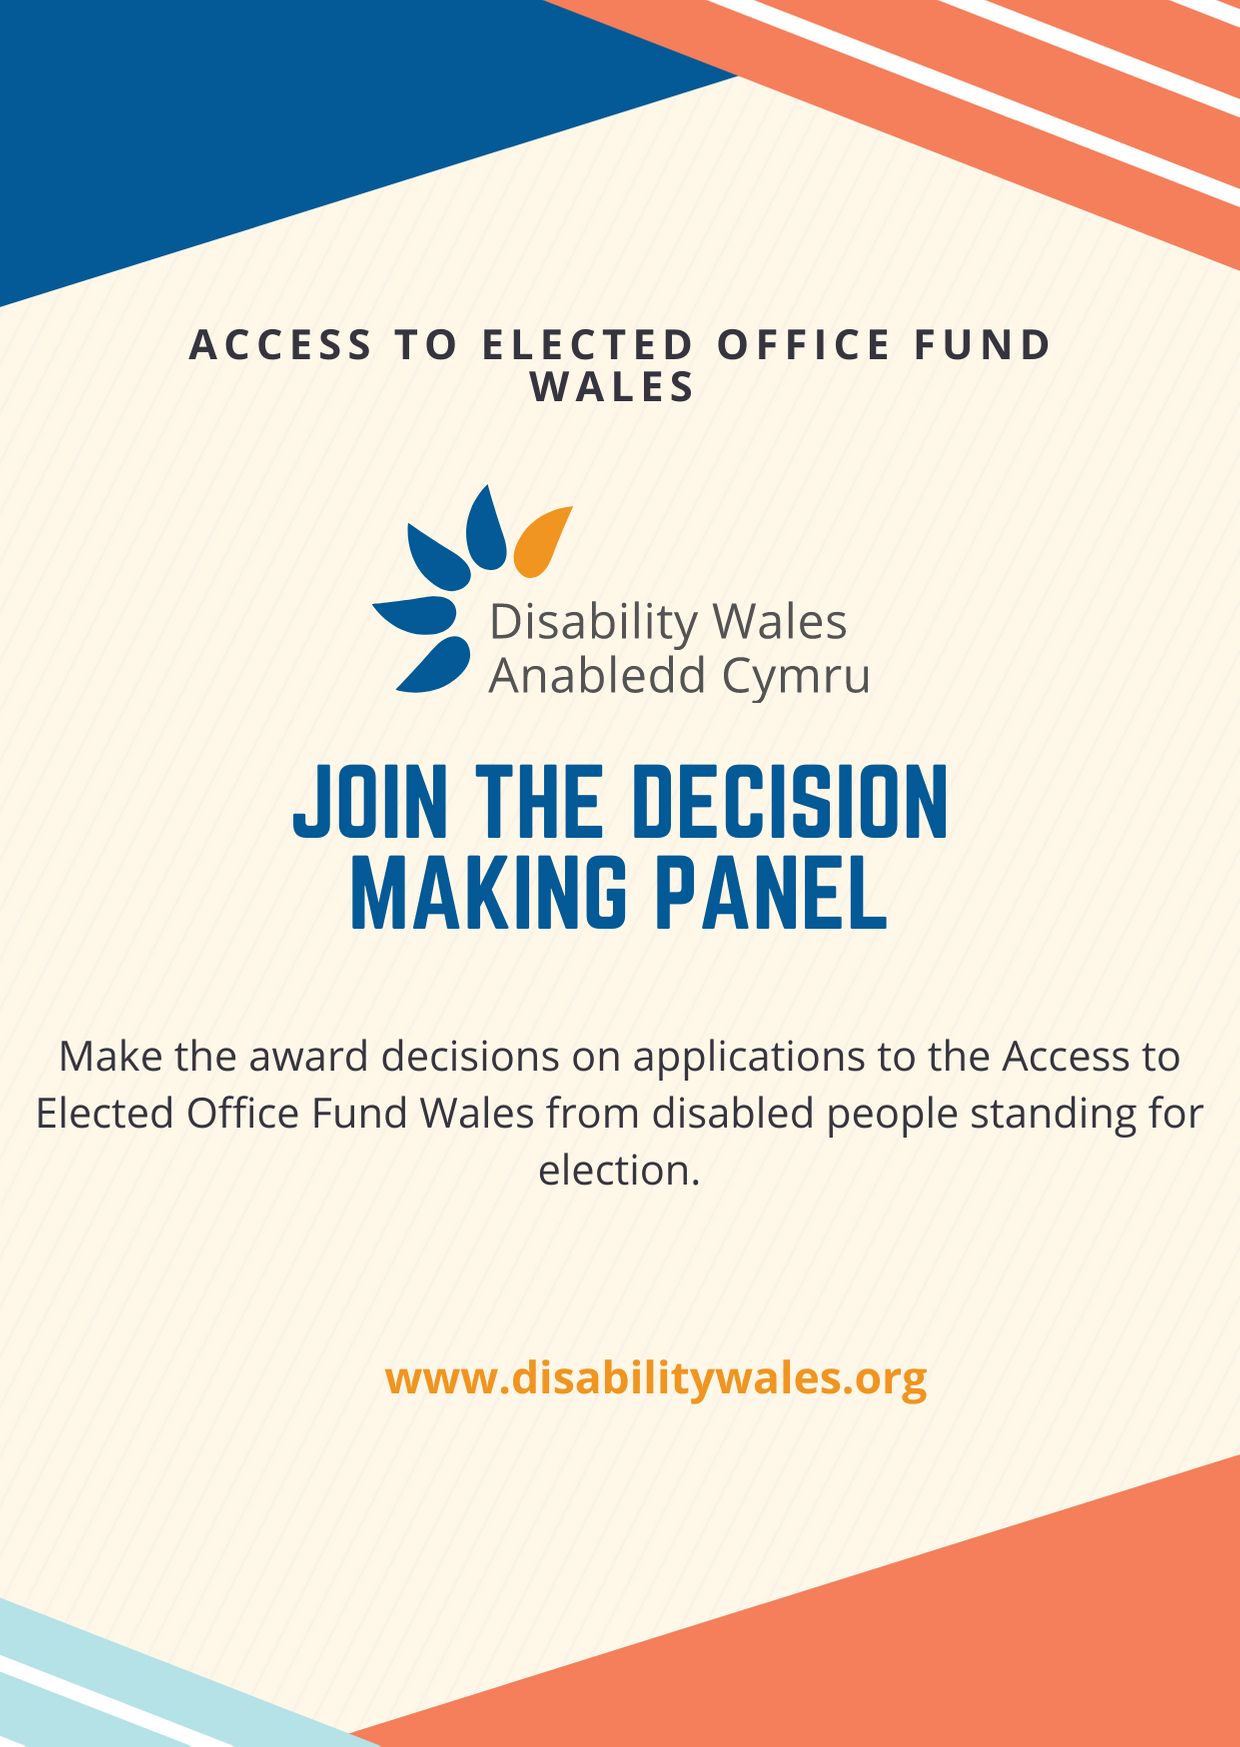 Job advert poster: Access to Elected Office Fund Wales - Join the panel.